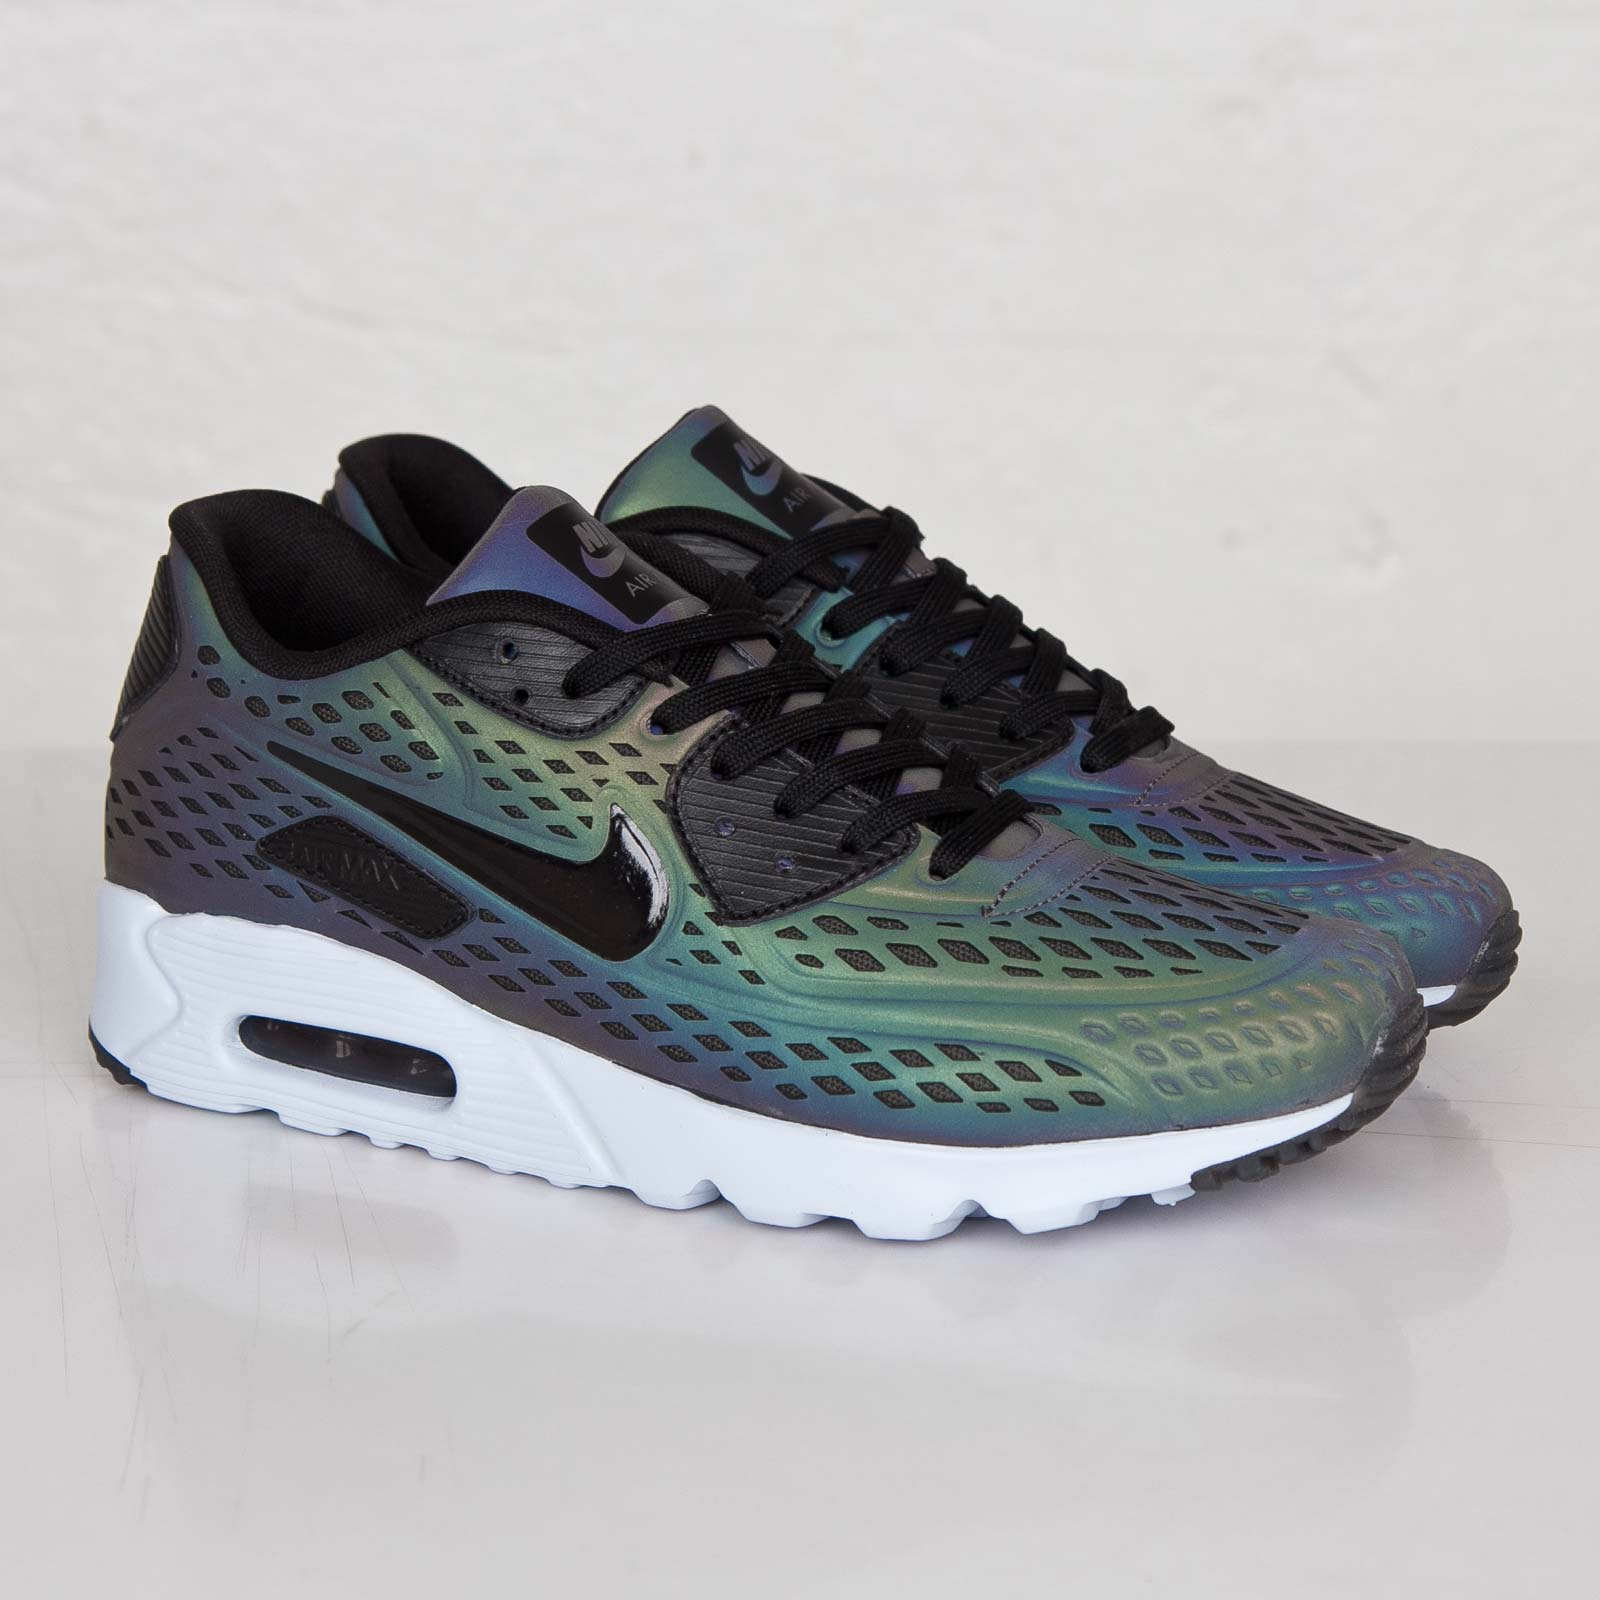 Air Max 90 Ultra Moire Iridescent nike air max 90 ultra moire qs - 777427-200 - sneakersnstuff